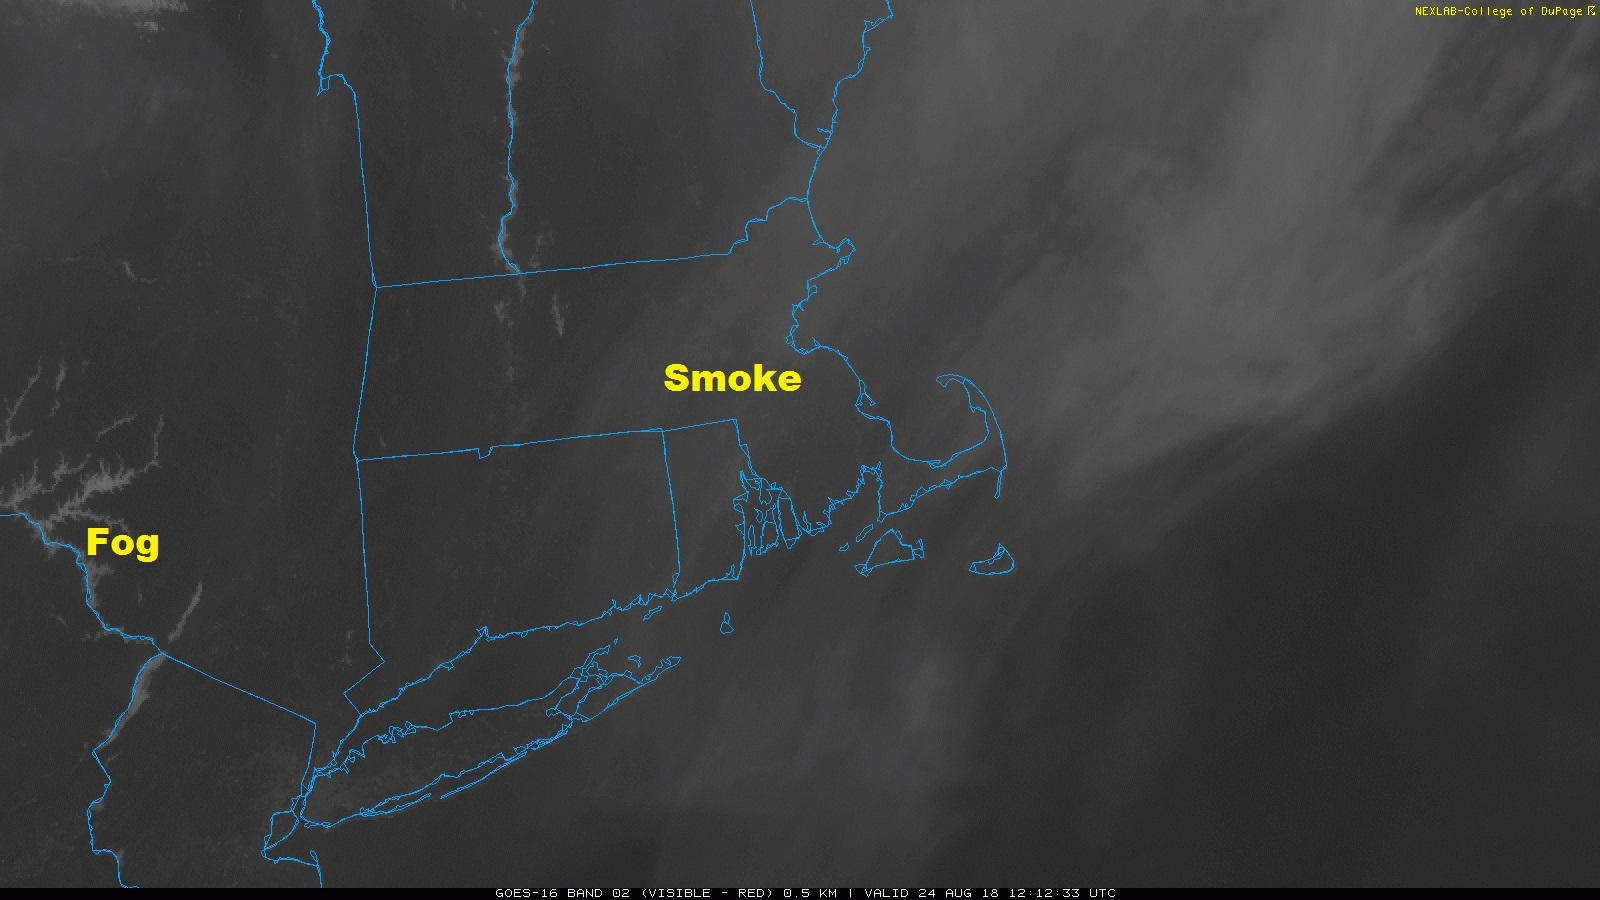 Smoke from Wildfires in the Western US is in New England ...